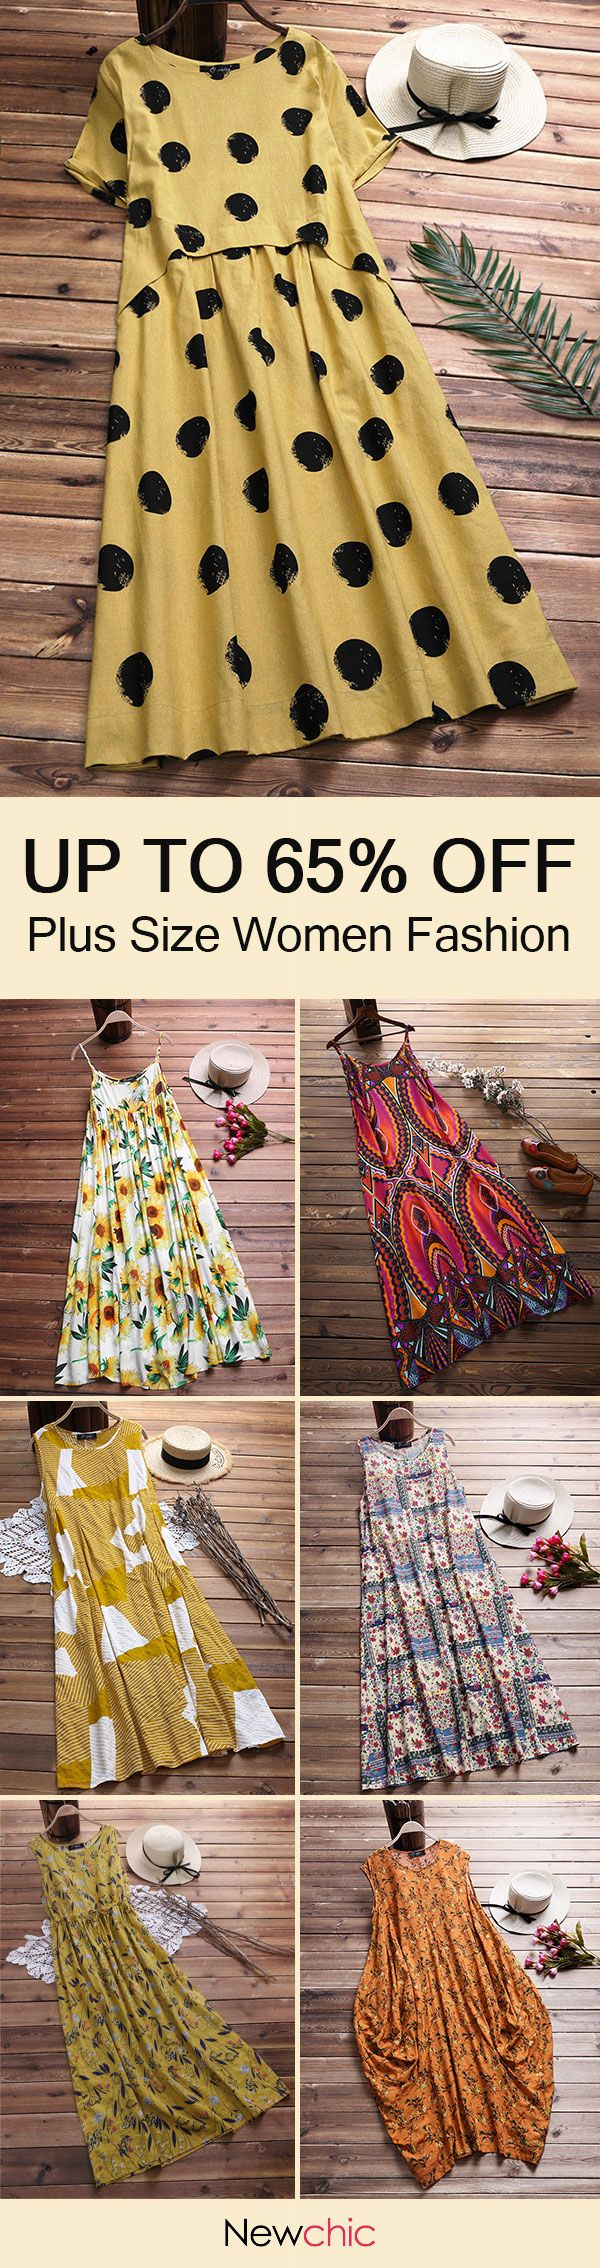 UP TO 65% OFF! Women casual outfits discount party. Tops, Dresses, Pants. Plus s... 5